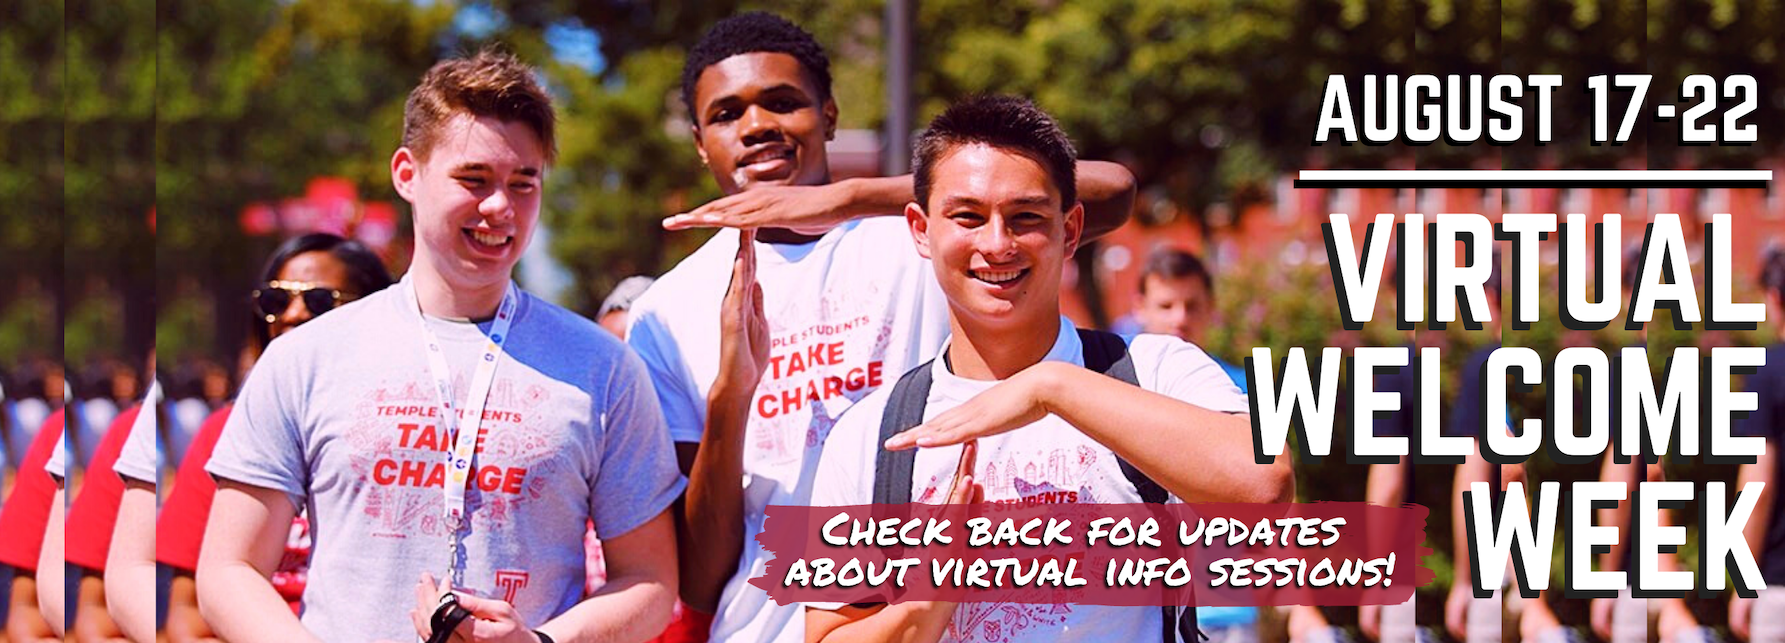 August 17-22, Virtual Welcome Week. Check back for updates on virtual info sessions.